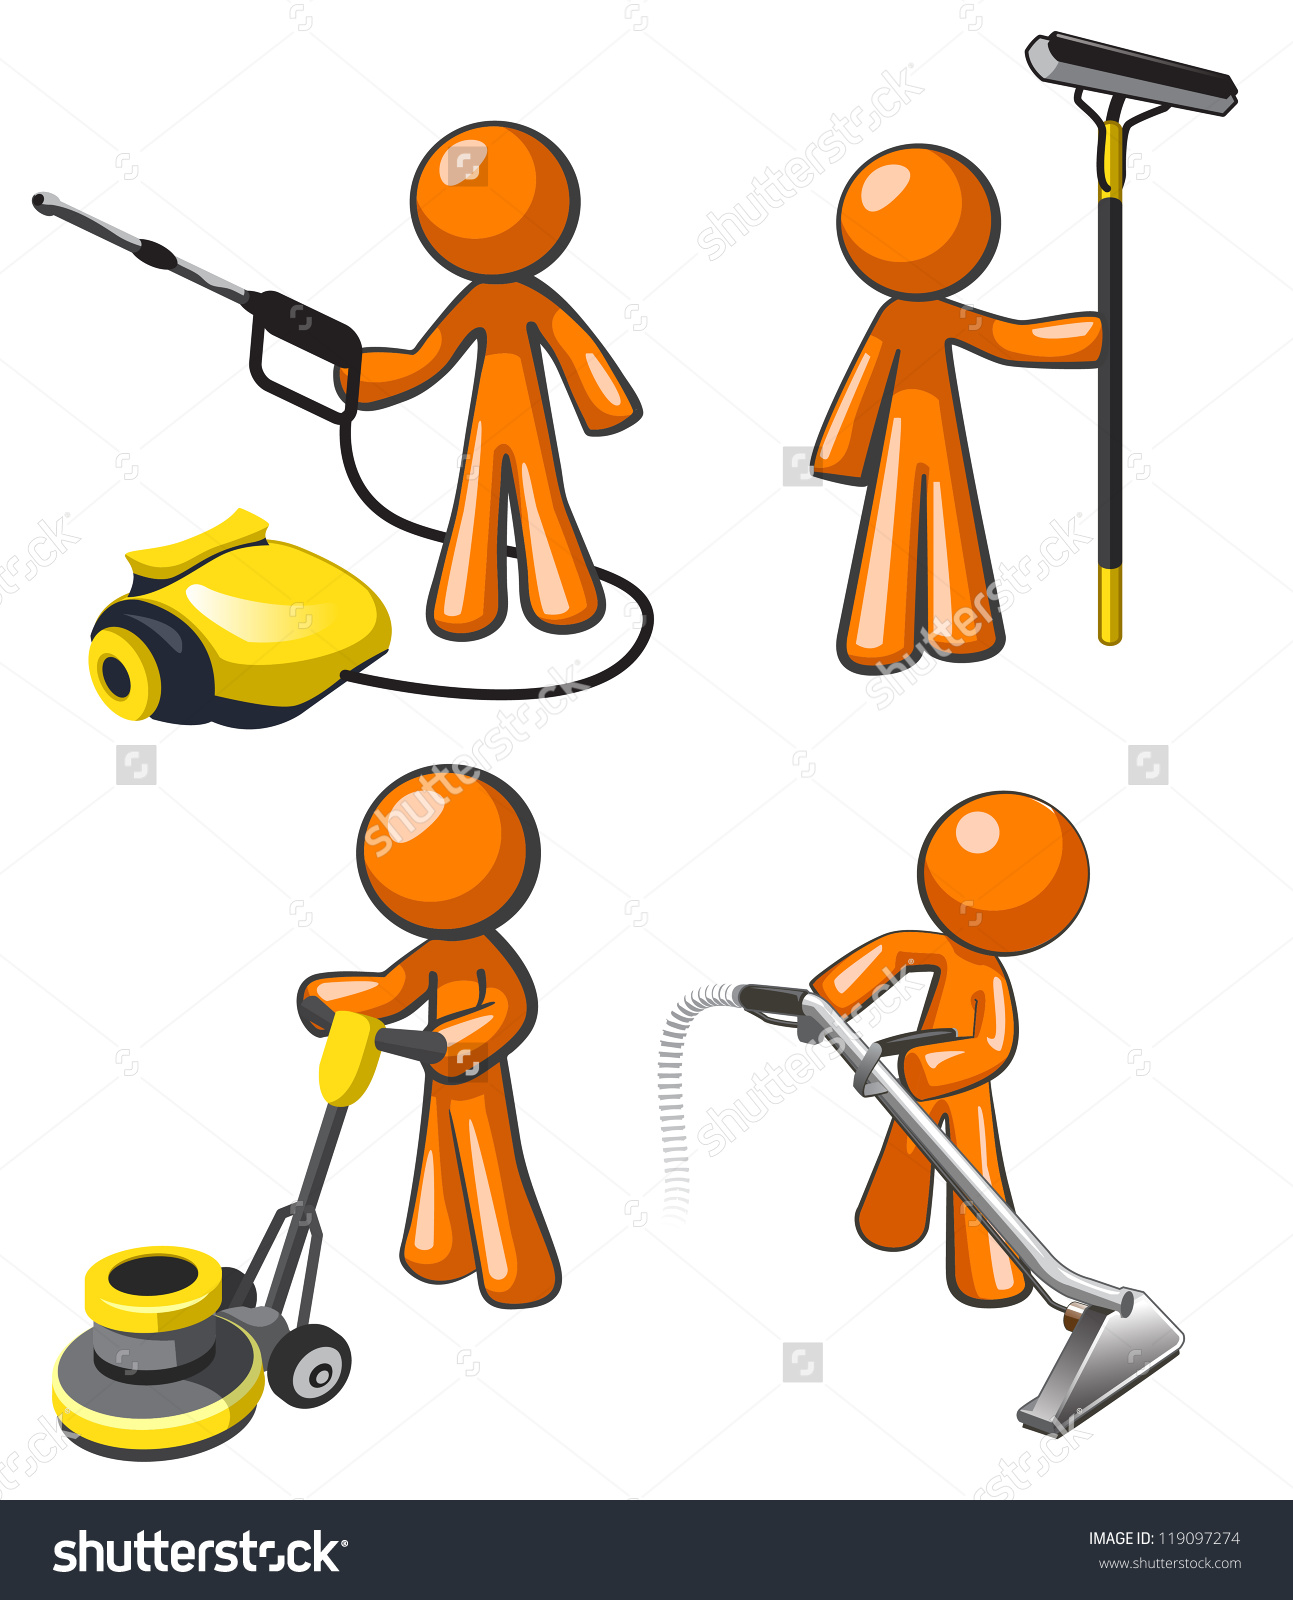 1293x1600 Floor Cleaning Clipart, Explore Pictures